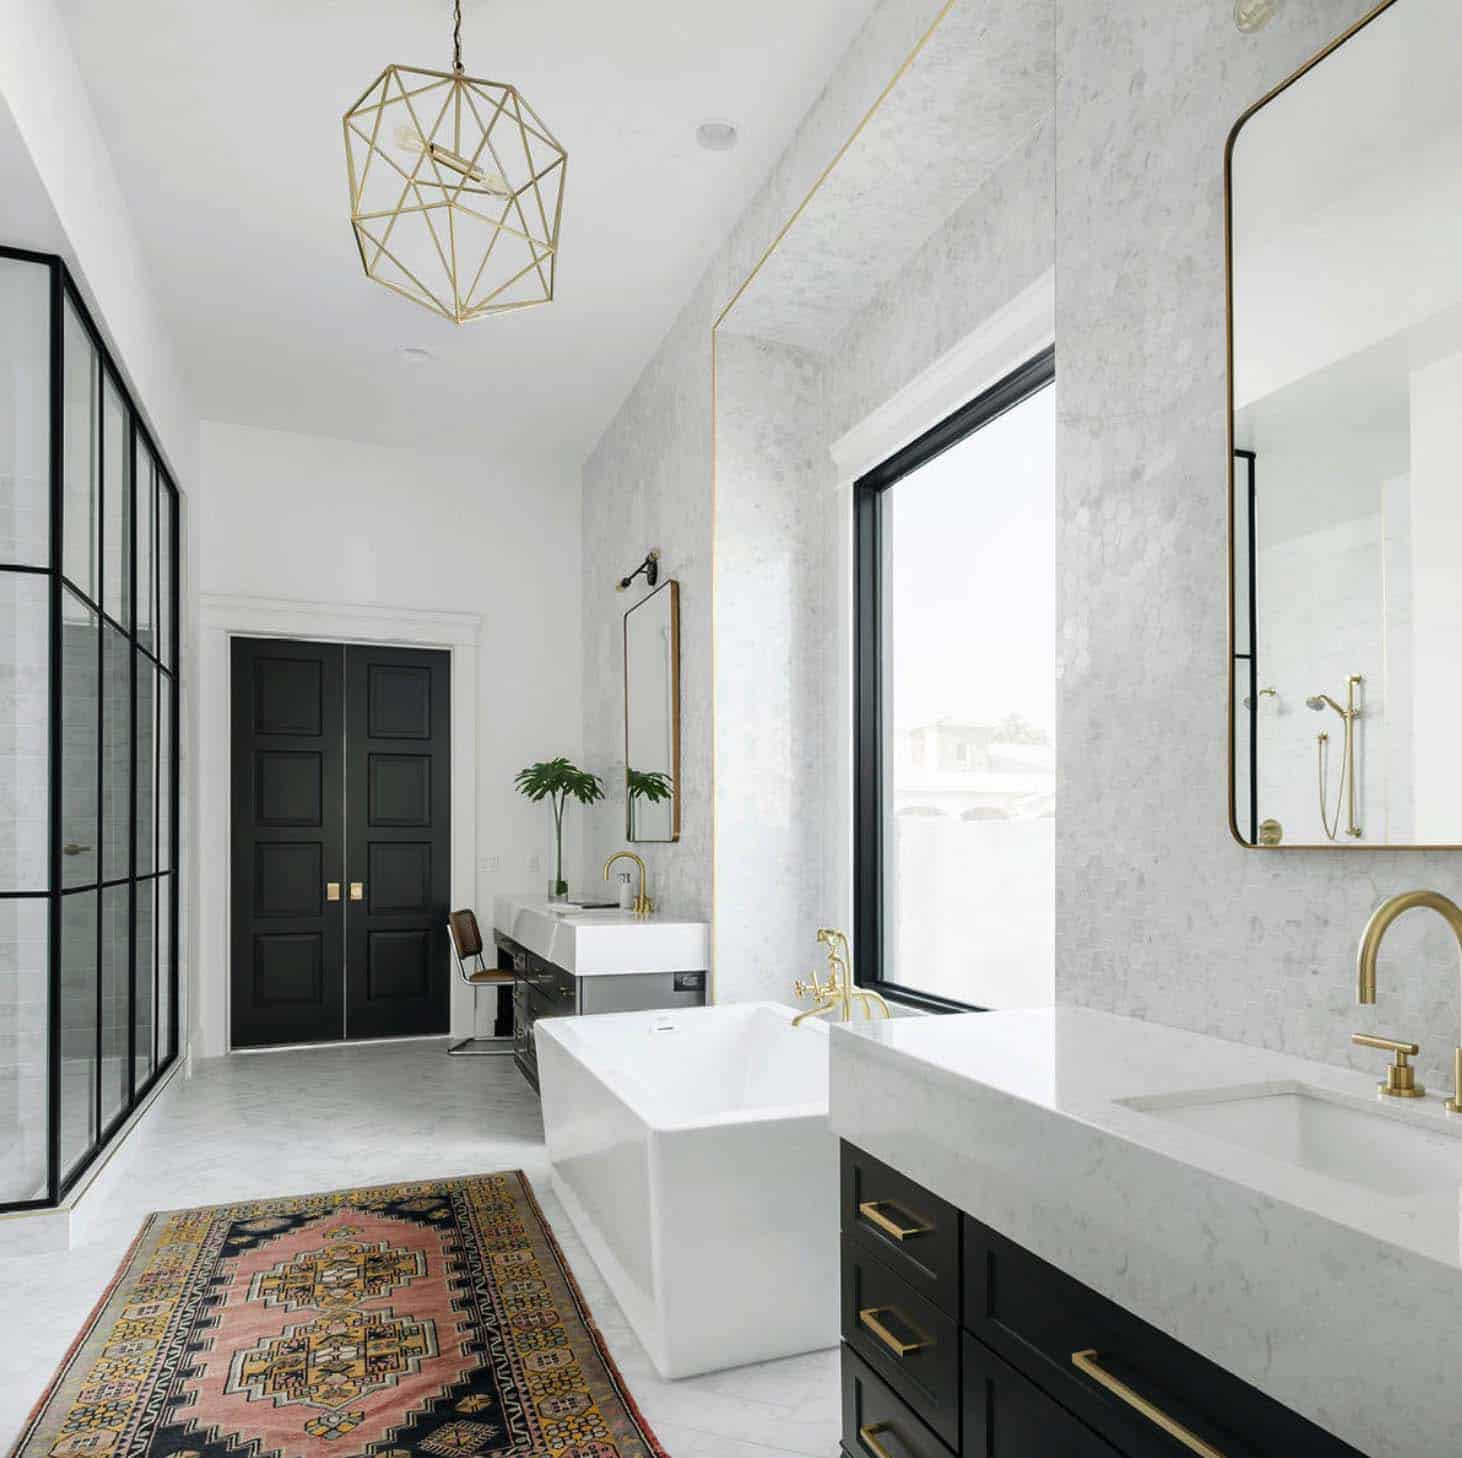 White Bathroom Decor Ideas Pictures Tips From Hgtv: 25+ Incredibly Stylish Black And White Bathroom Ideas To